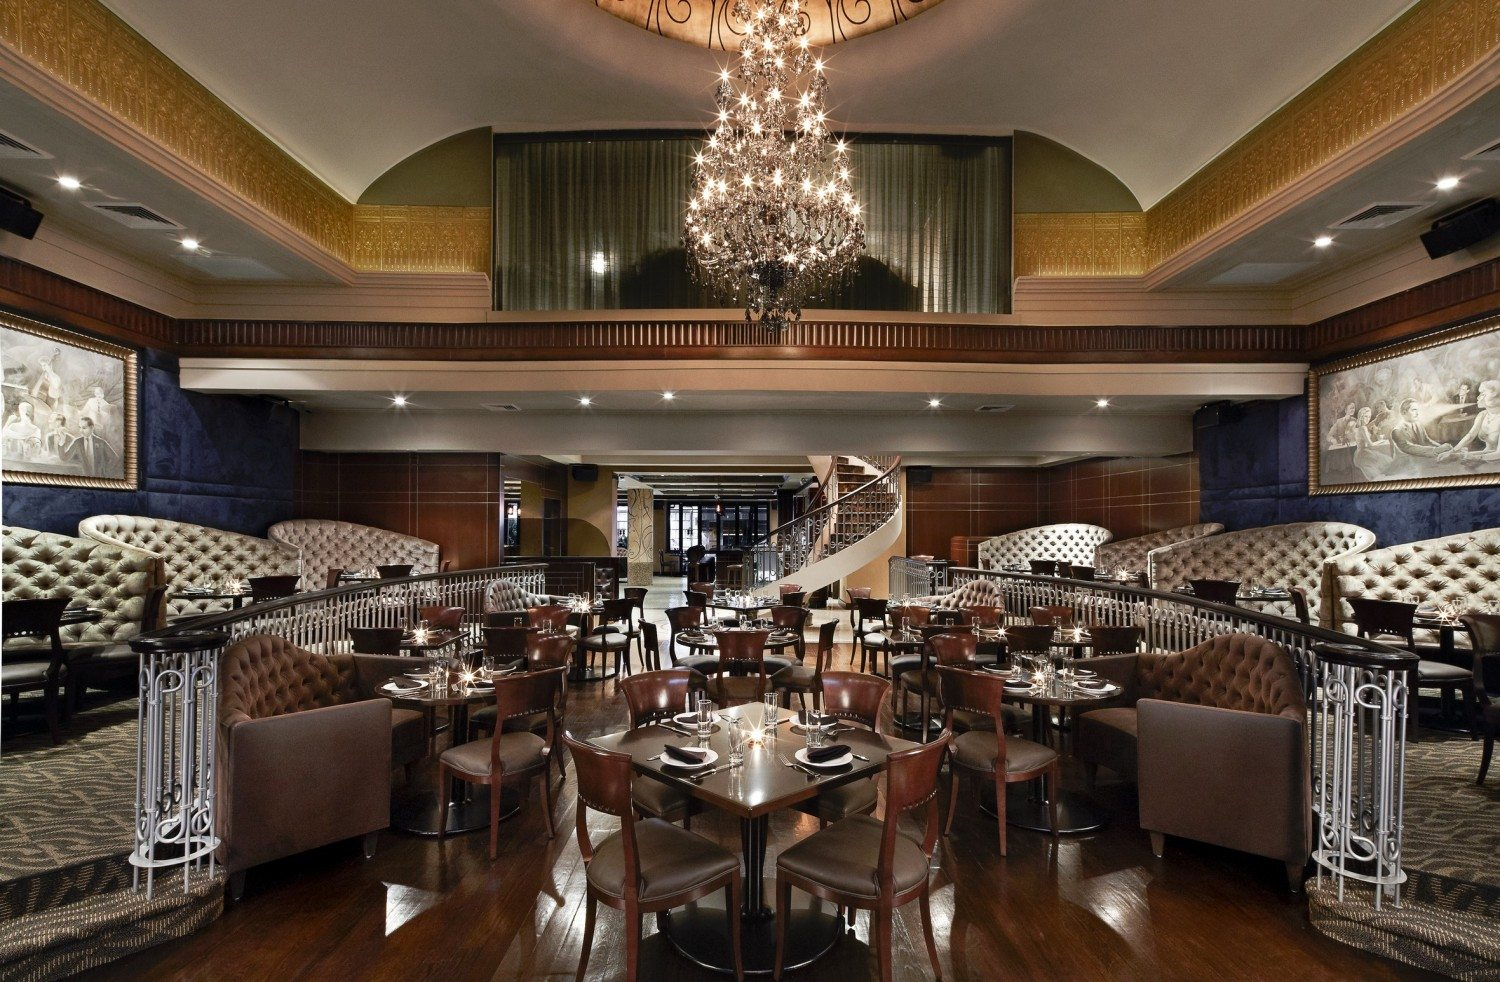 Empire Steak House: Old New York Elegance With Top Shelf Food and Service